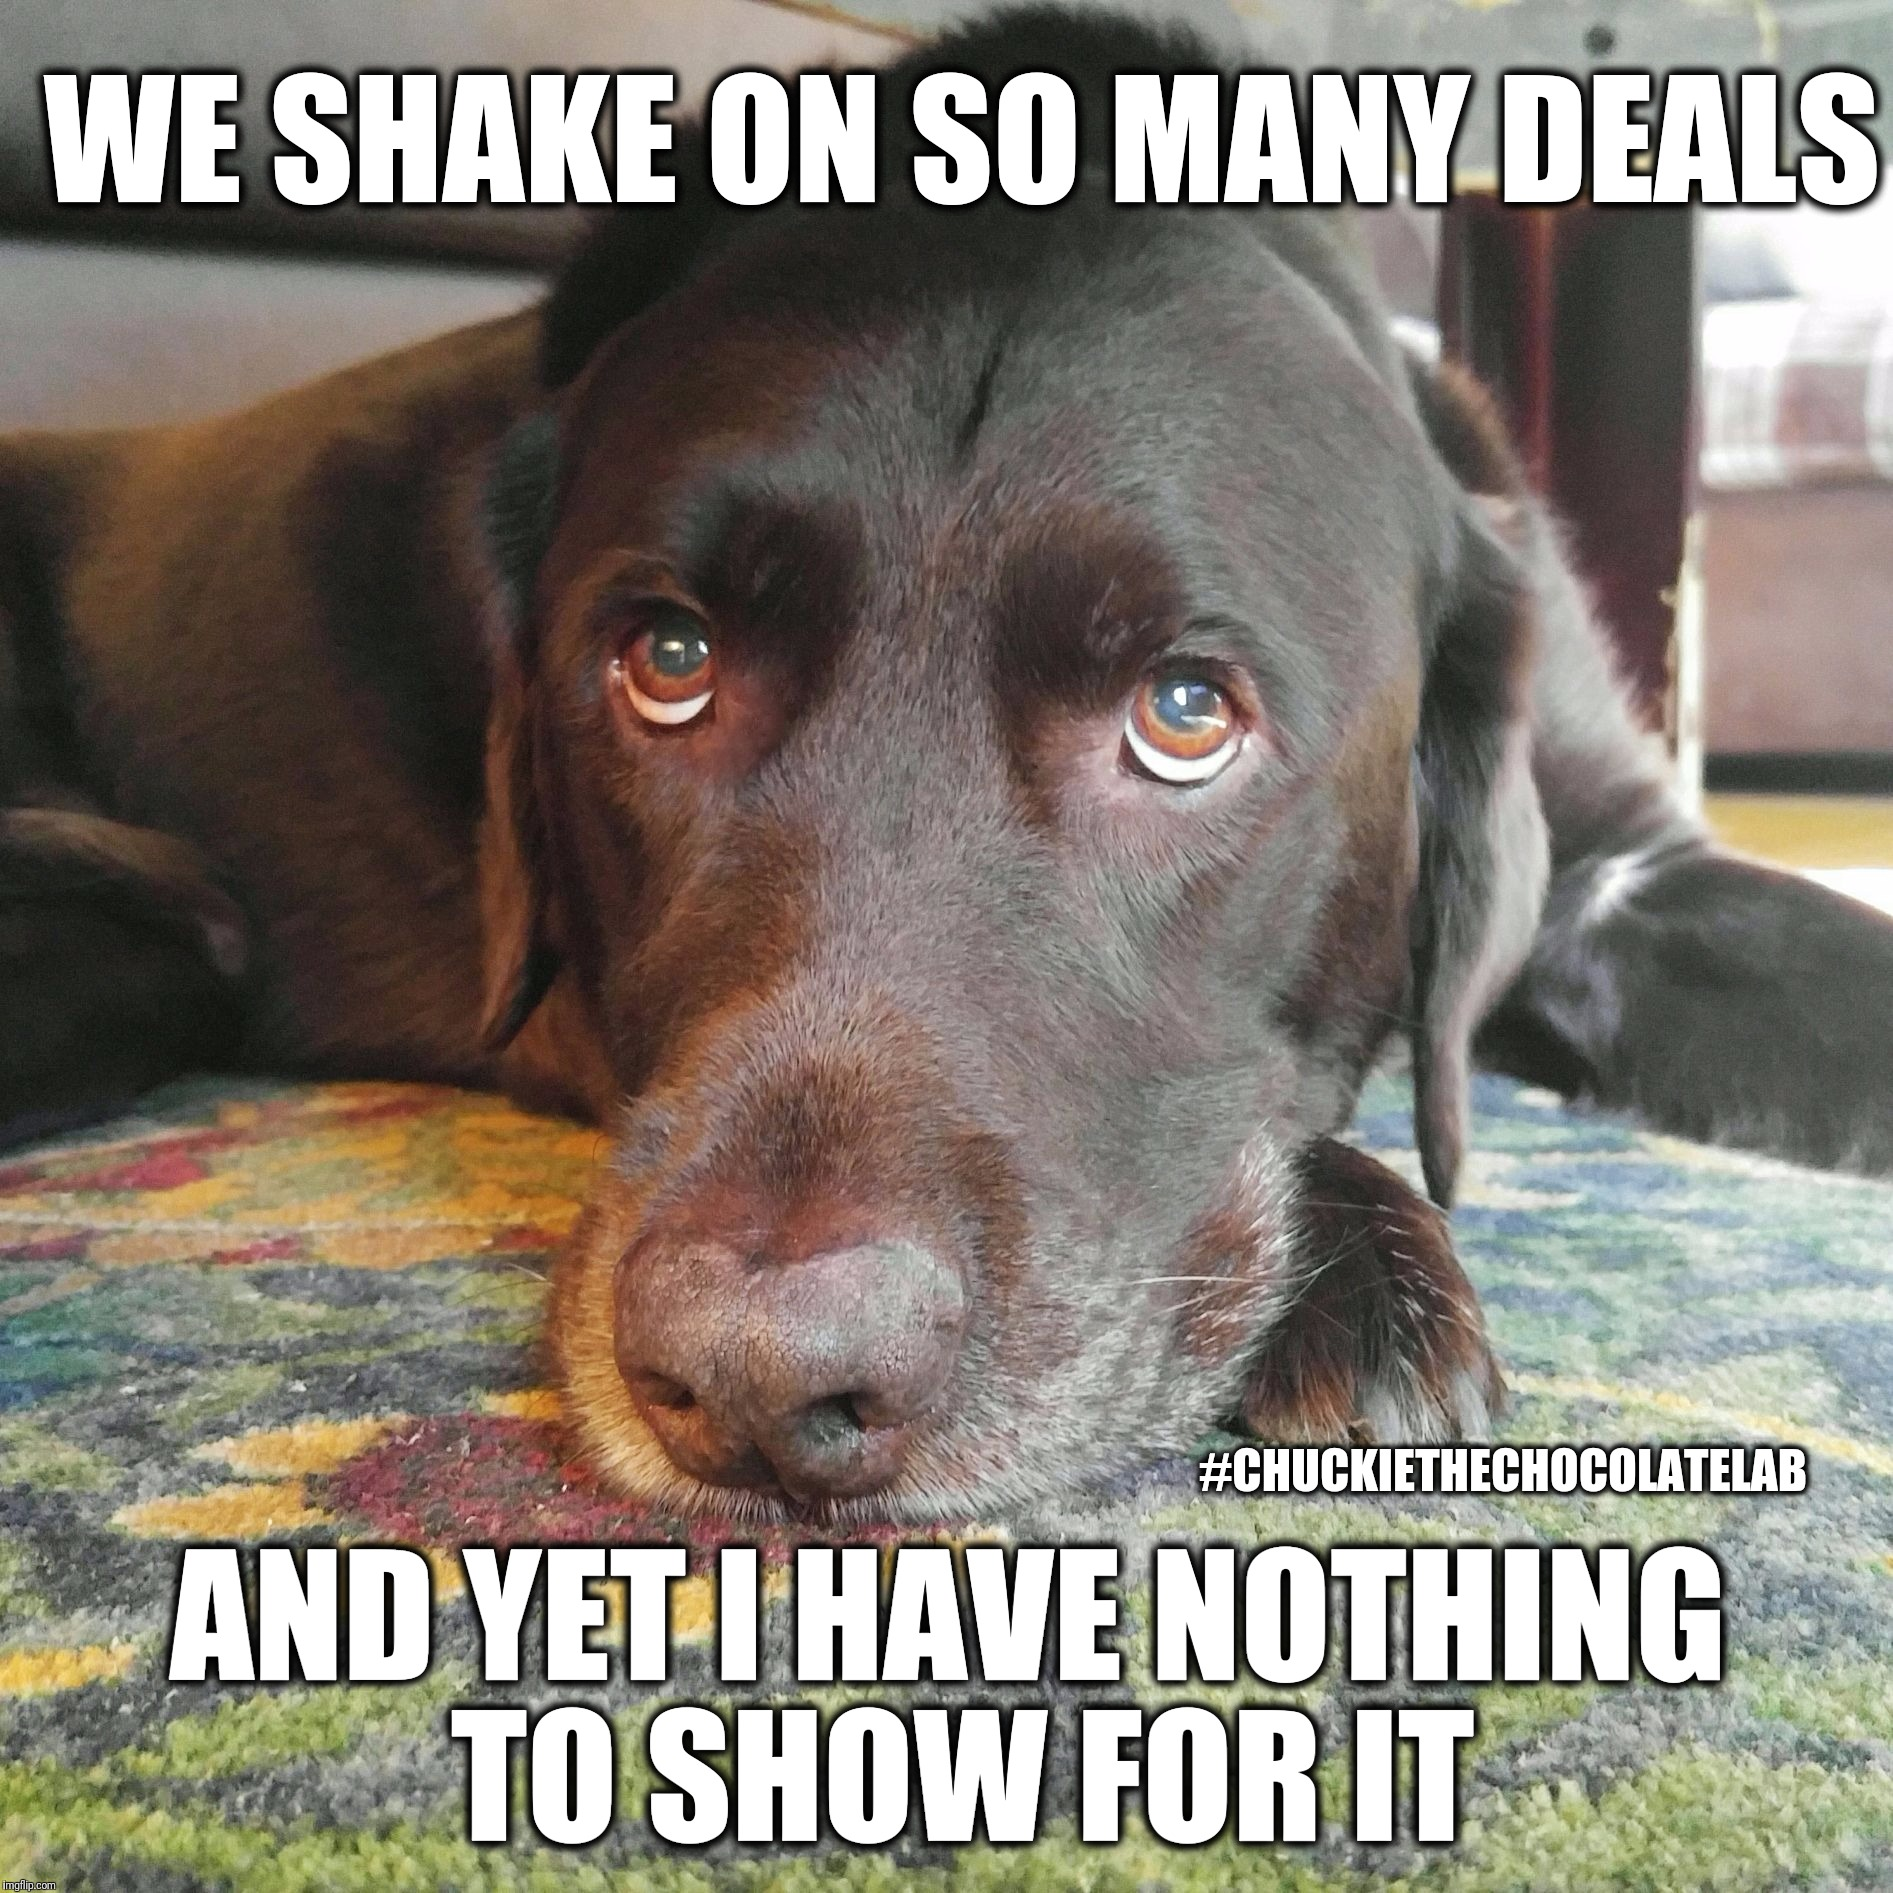 We shake on so many deals, and yet I have nothing to show for it | WE SHAKE ON SO MANY DEALS #CHUCKIETHECHOCOLATELAB AND YET I HAVE NOTHING TO SHOW FOR IT | image tagged in chuckie the chocolate lab,funny,dogs,memes,shake,nothing to show for it | made w/ Imgflip meme maker